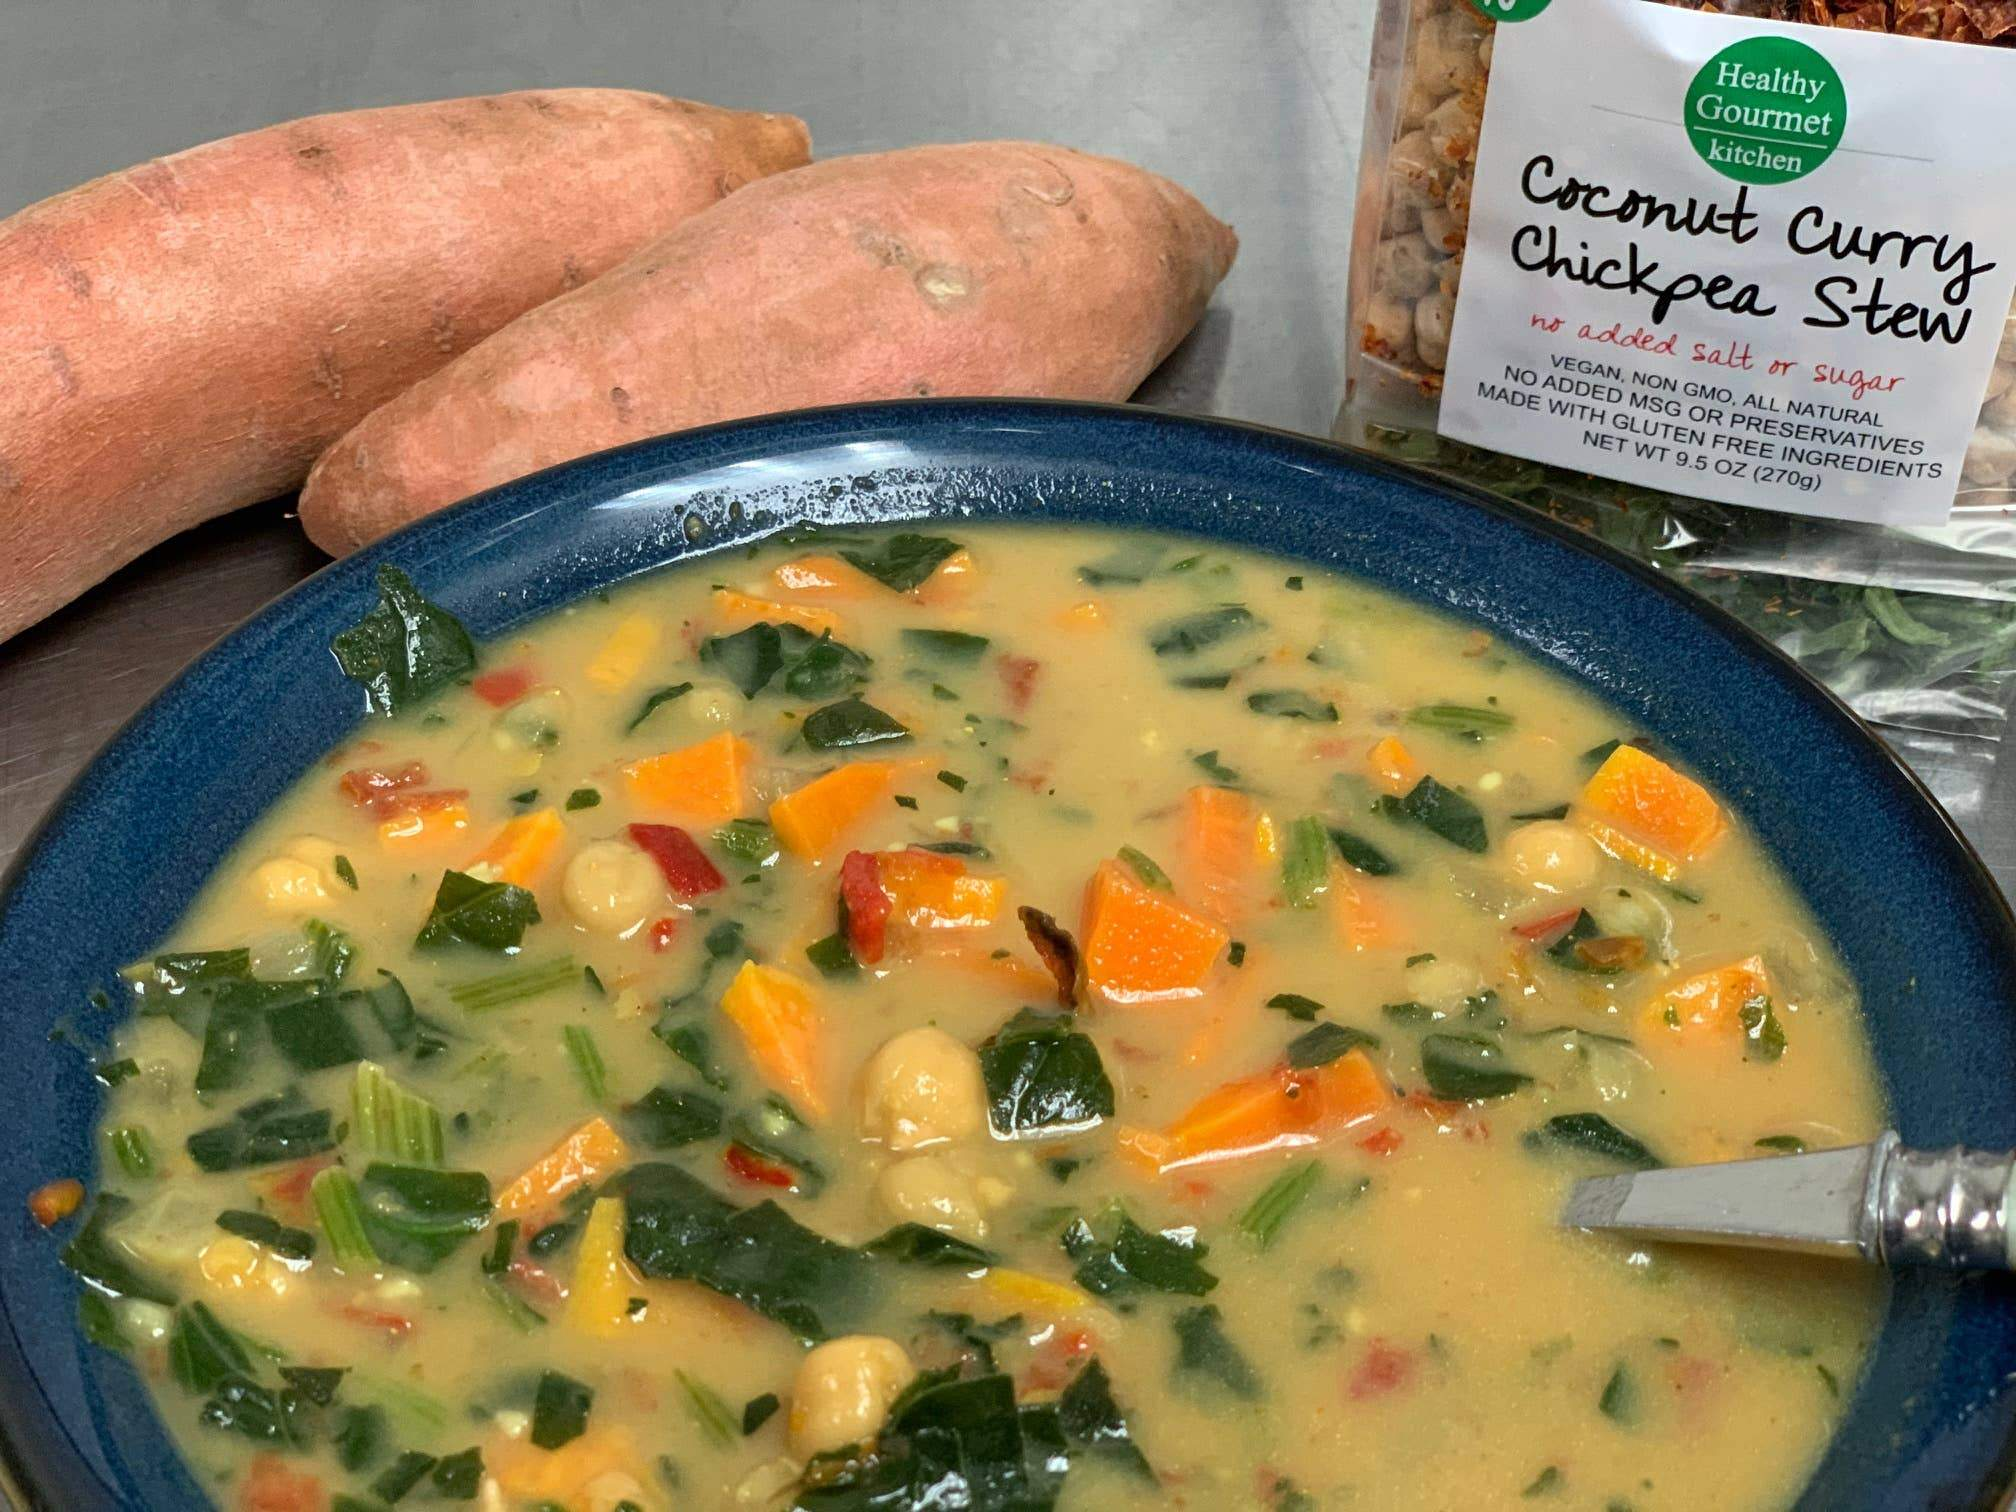 Coconut Curry Chickpea Soup Food and Beverage Healthy Gourmet Kitchen